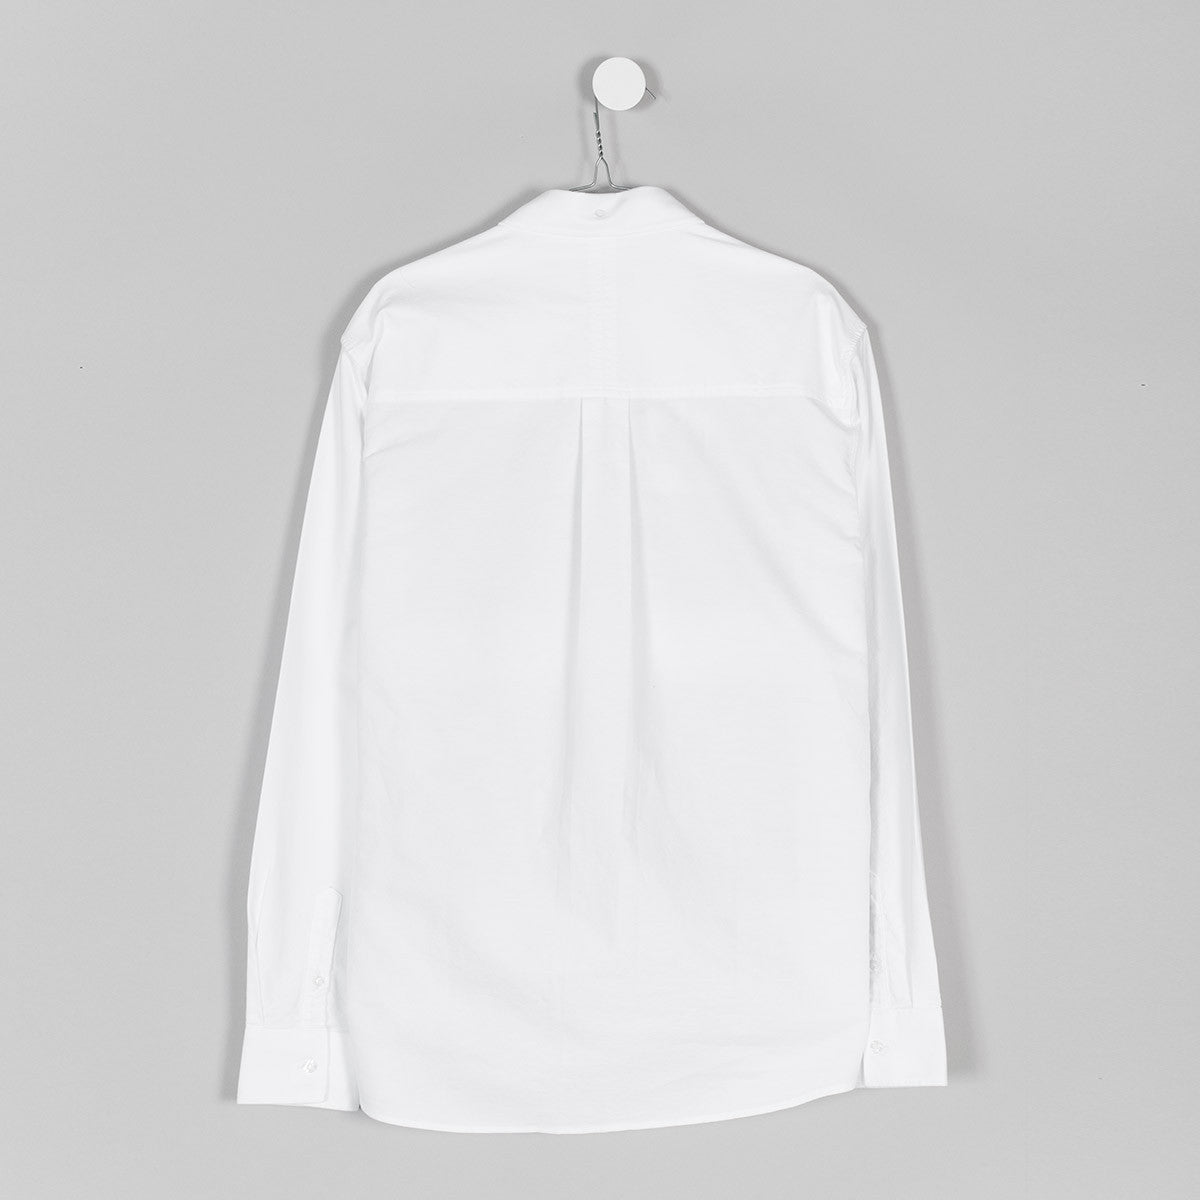 Soulland Goldsmith Oxford Shirt – White  - CARTOCON